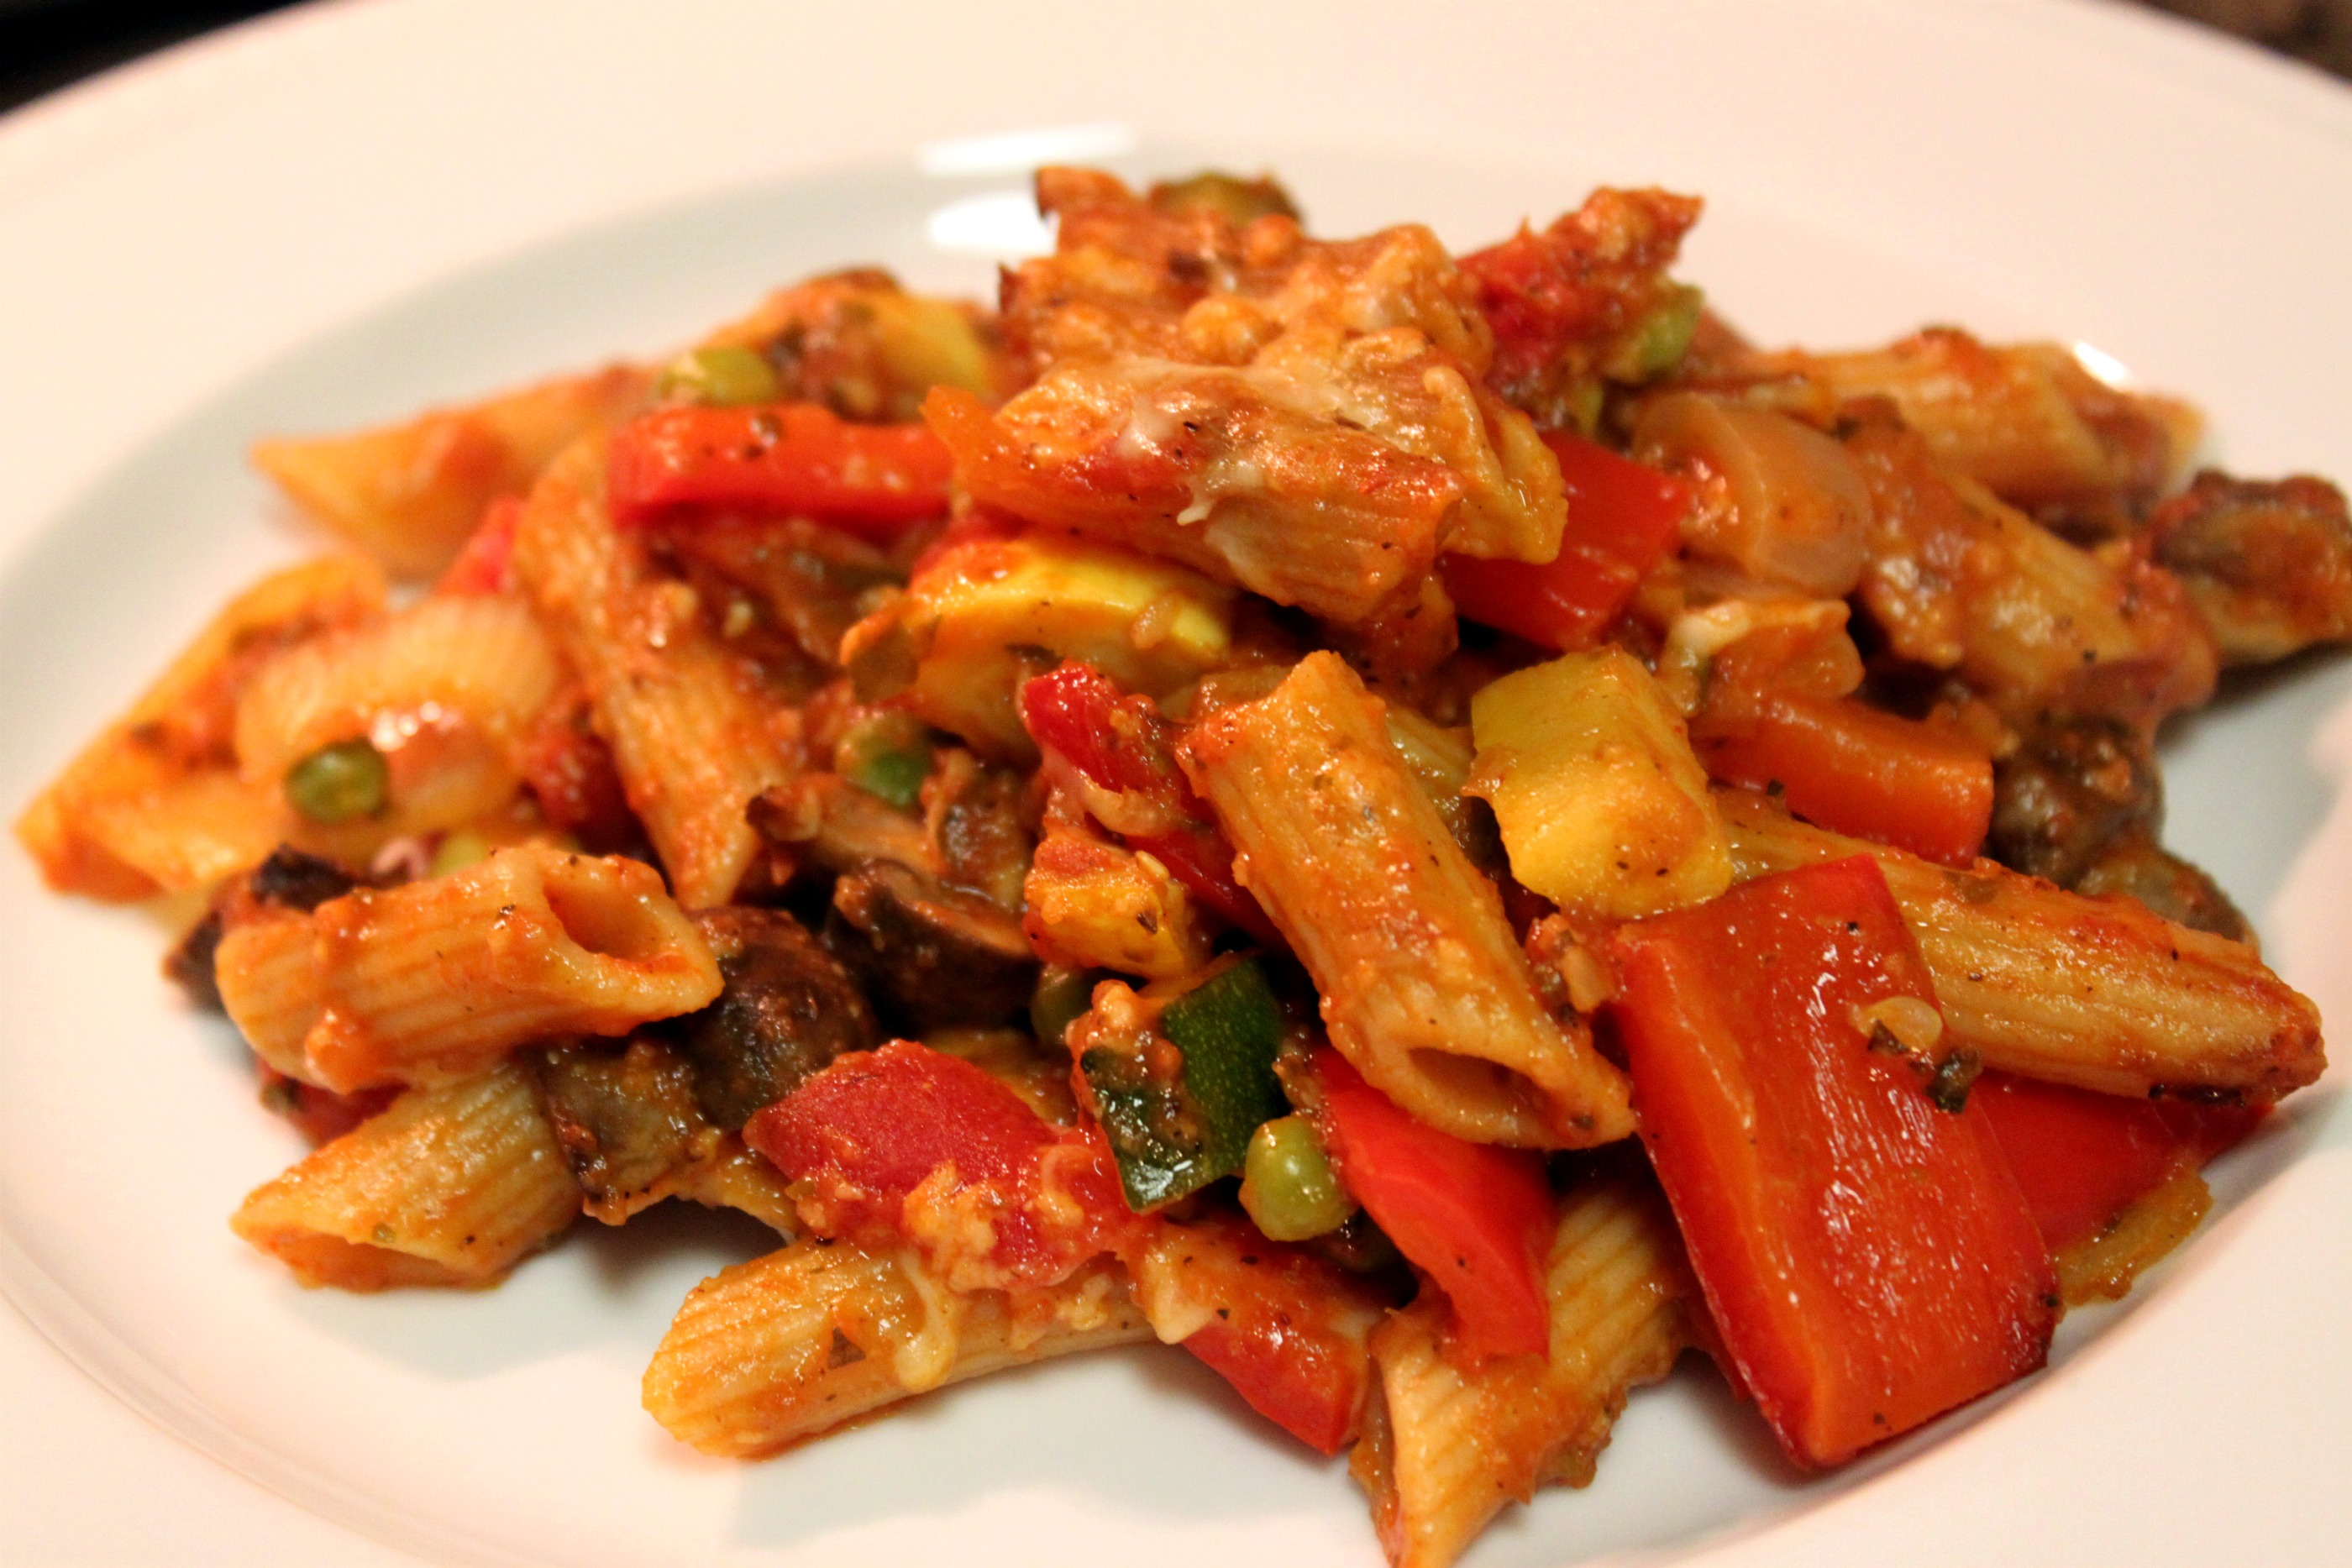 Baked Penne with Roasted Vegetables